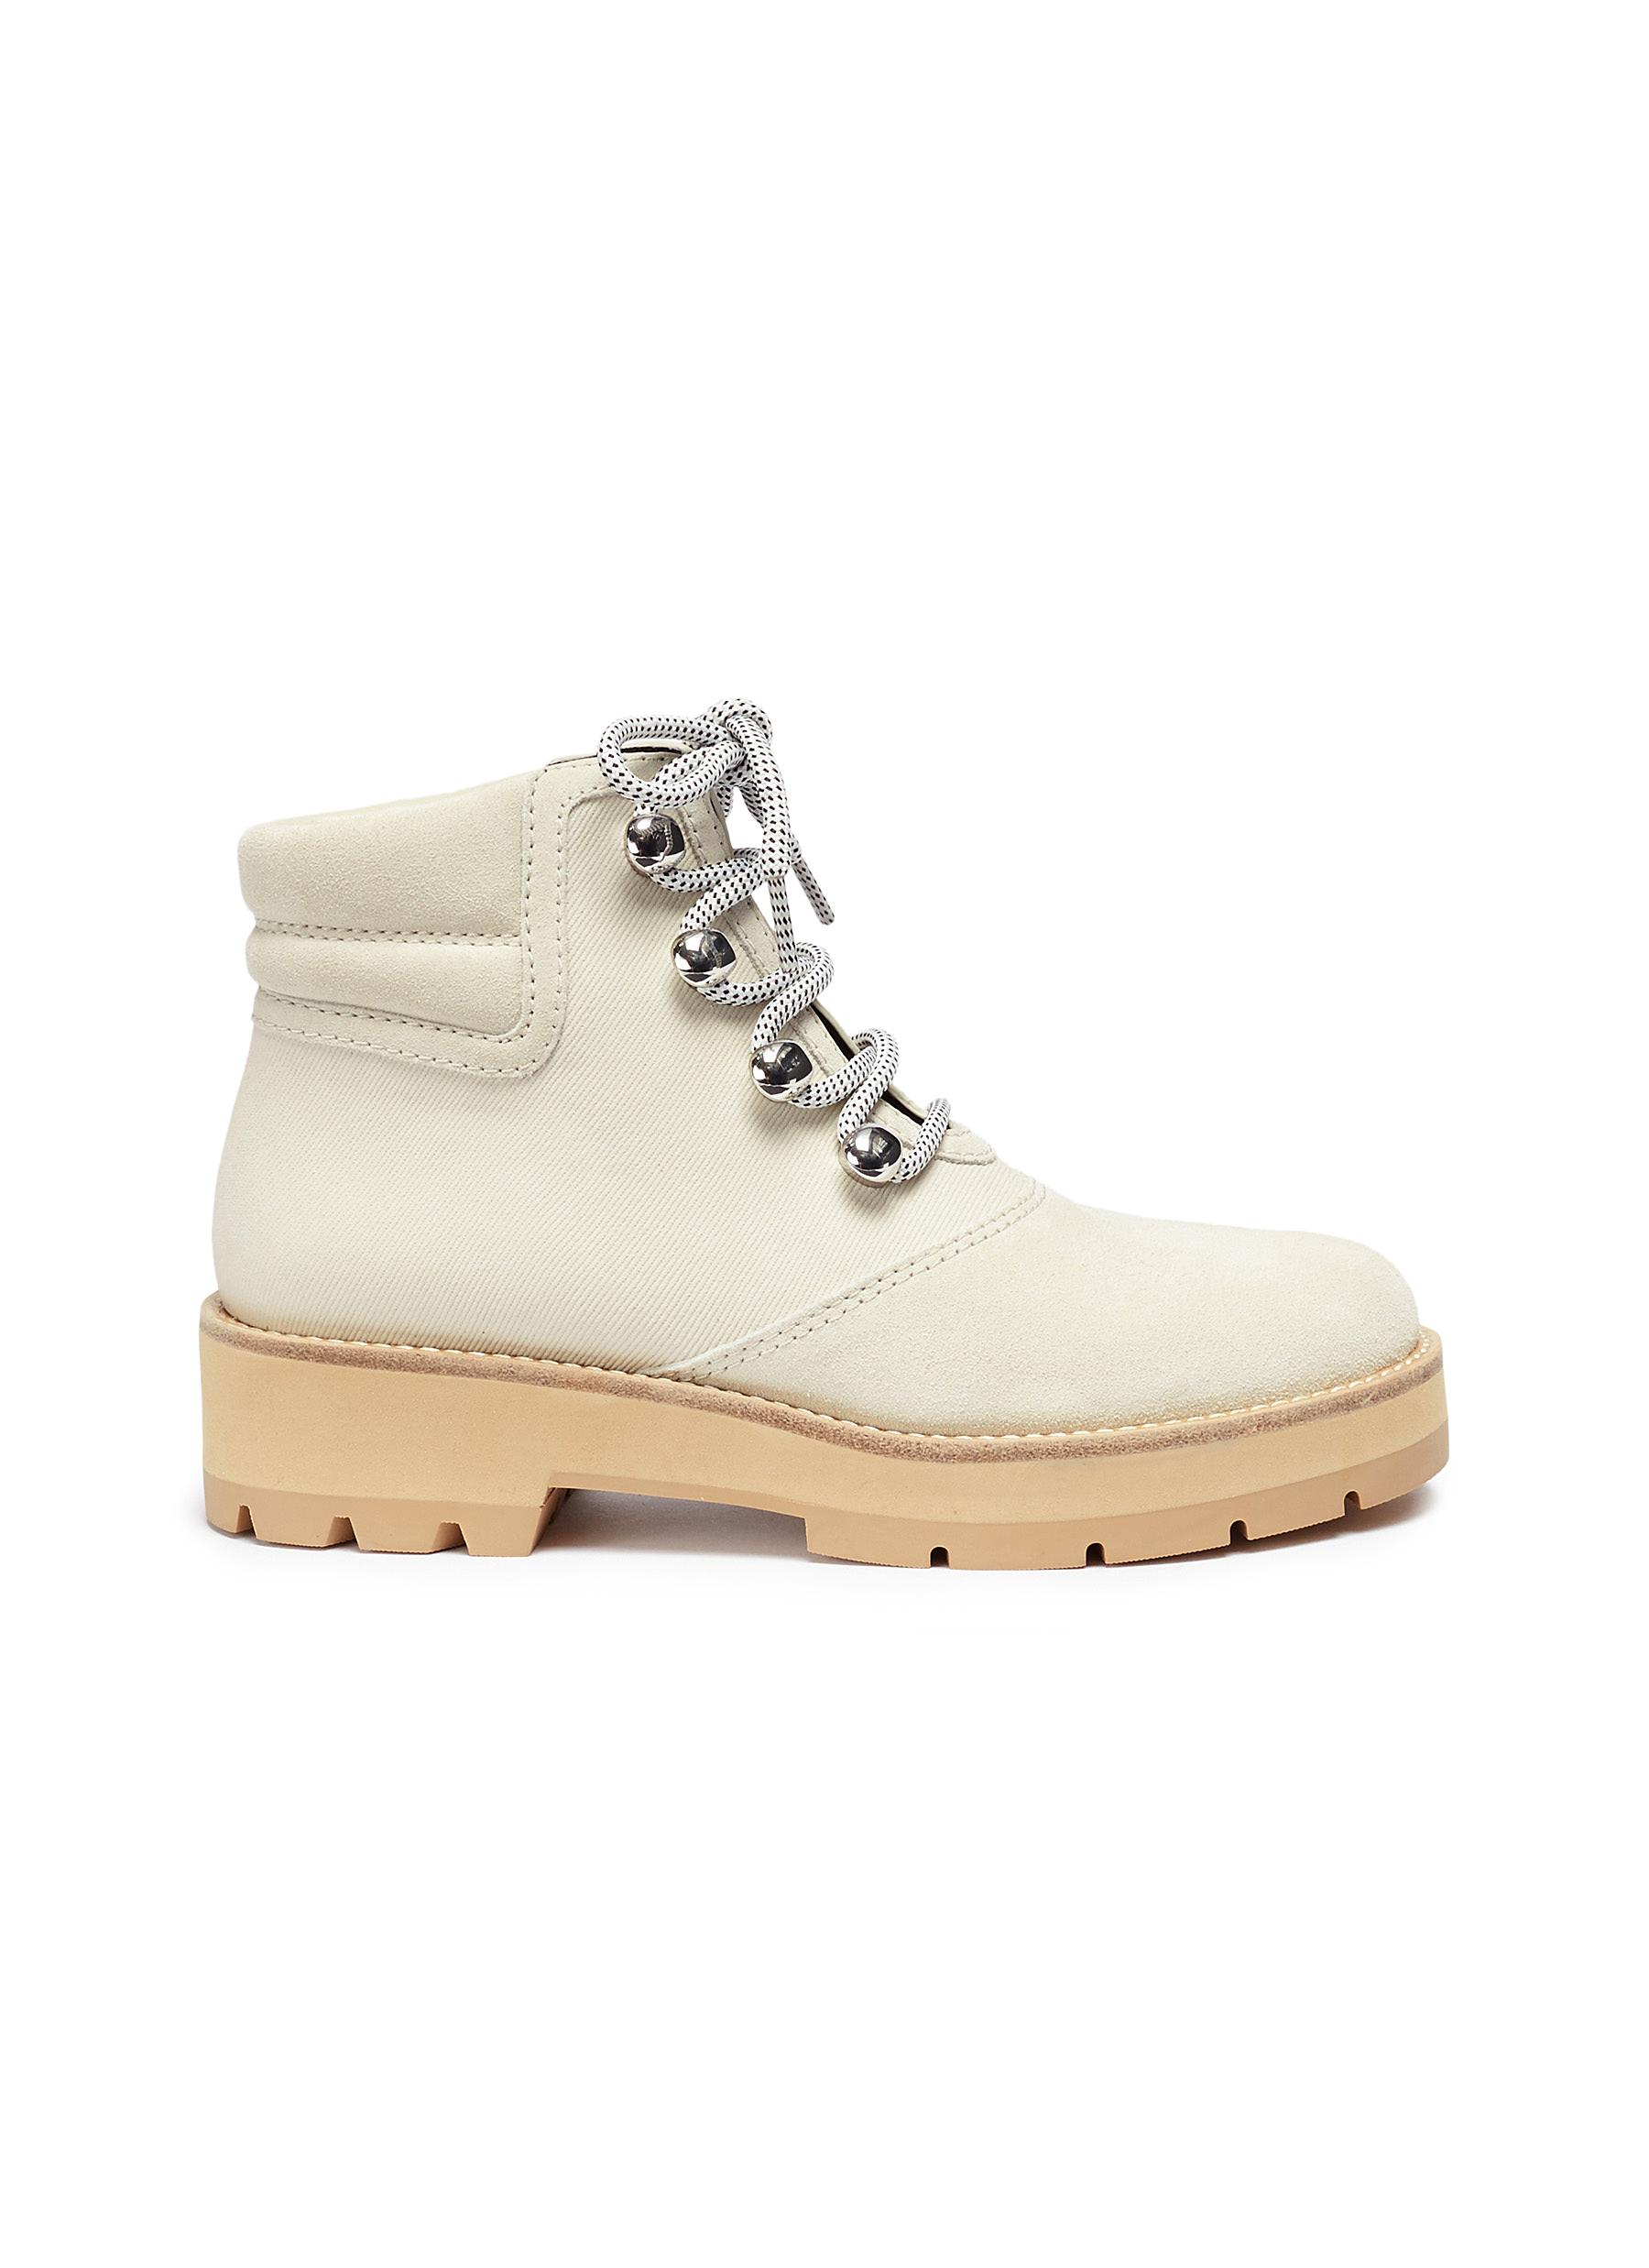 Dylan suede hiking boots by 3.1 Phillip Lim